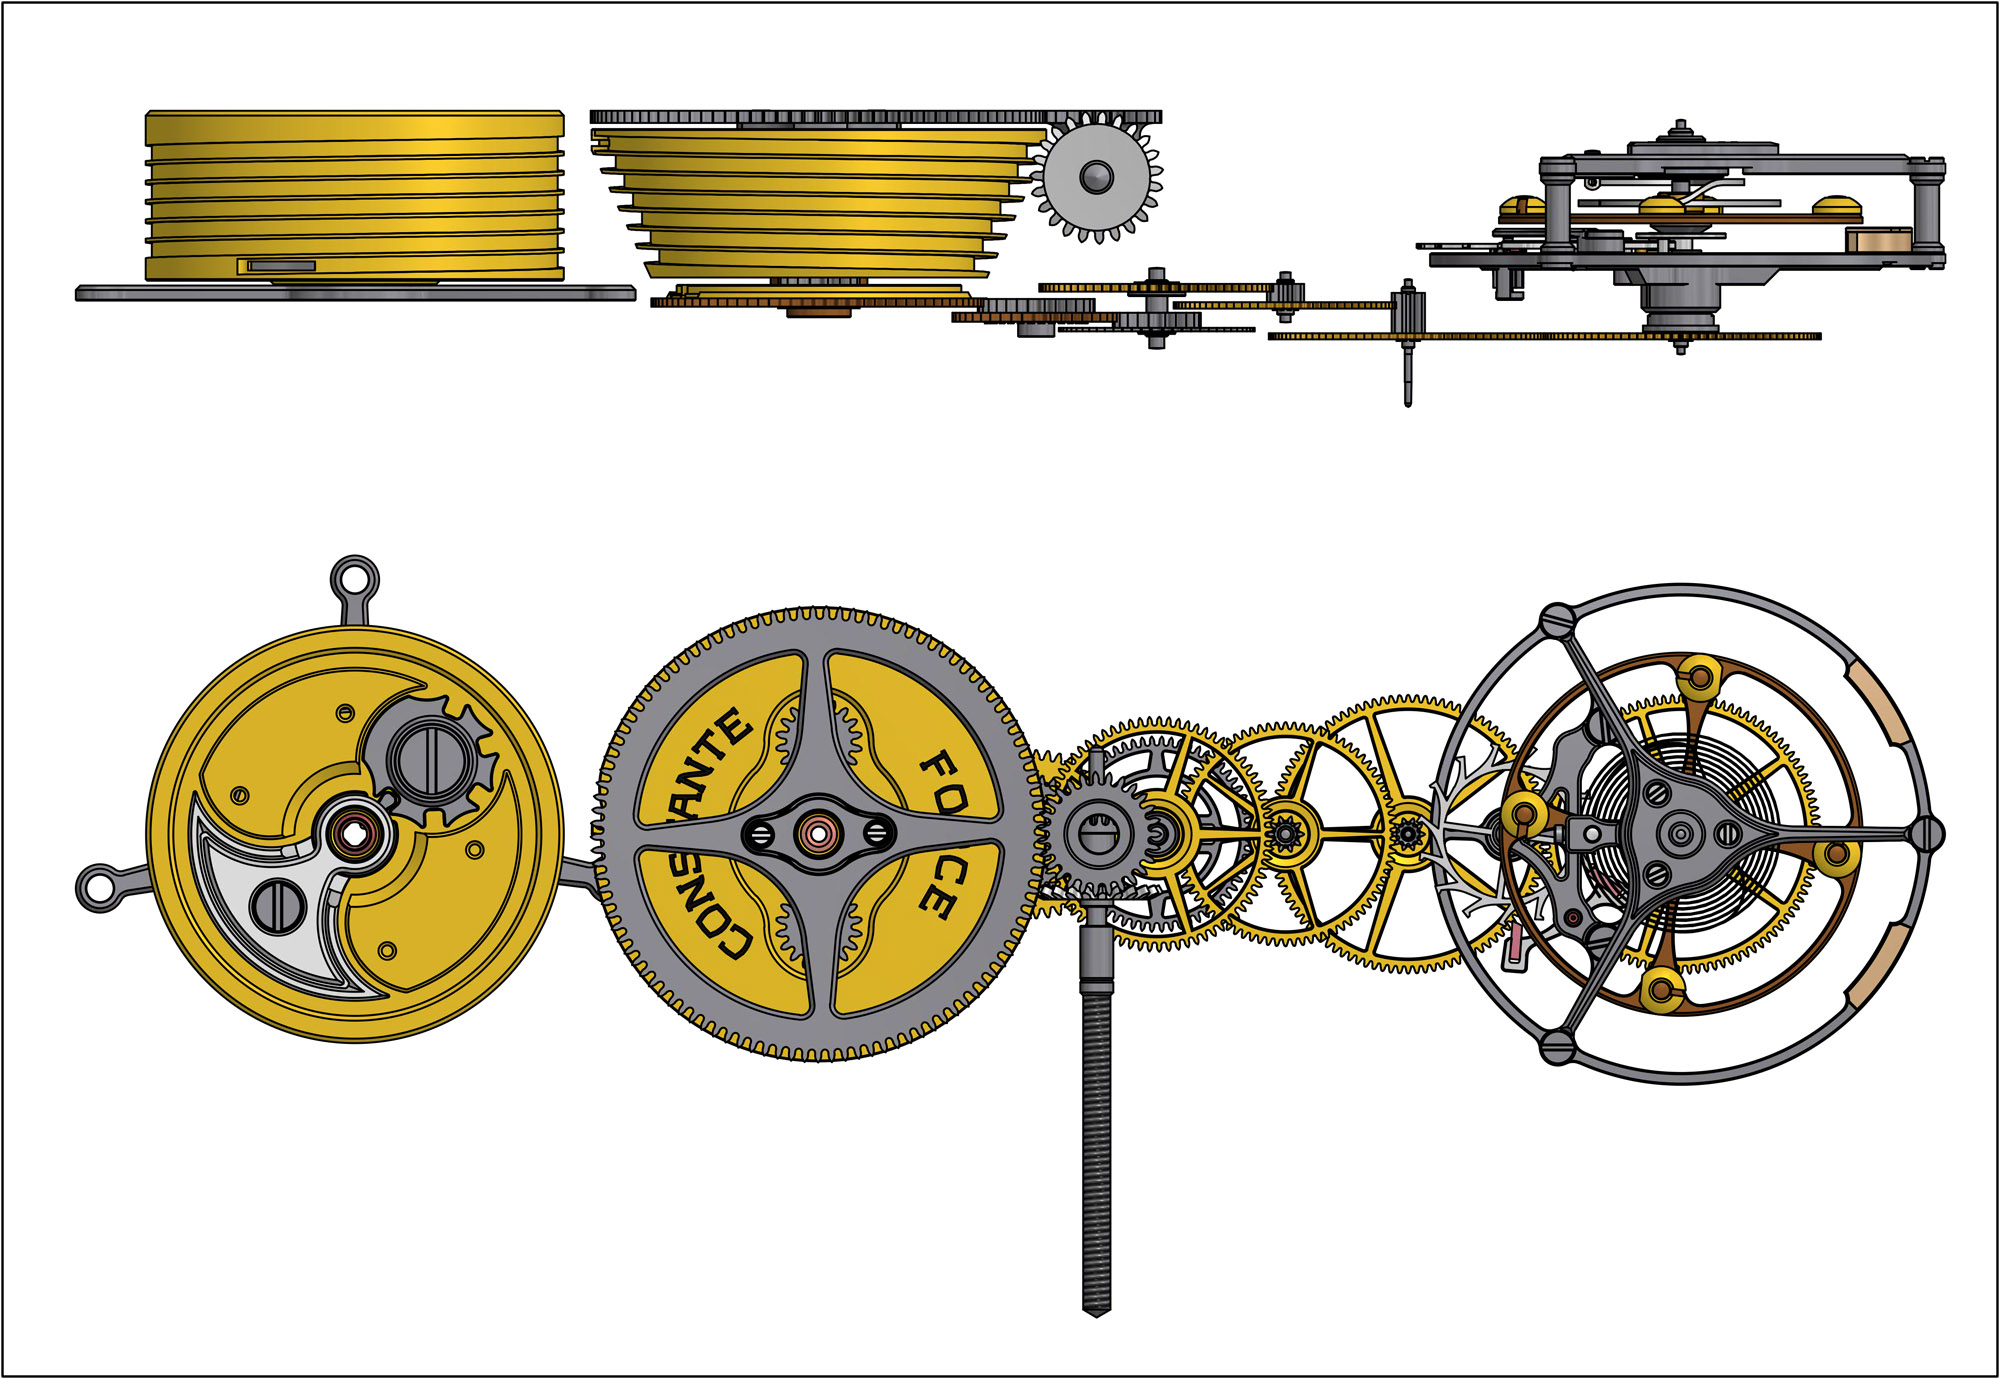 Ferdinand Berthoud Chronometry FB 1R 1L 1 chronometer tourbillon assembly watchmaking gear train